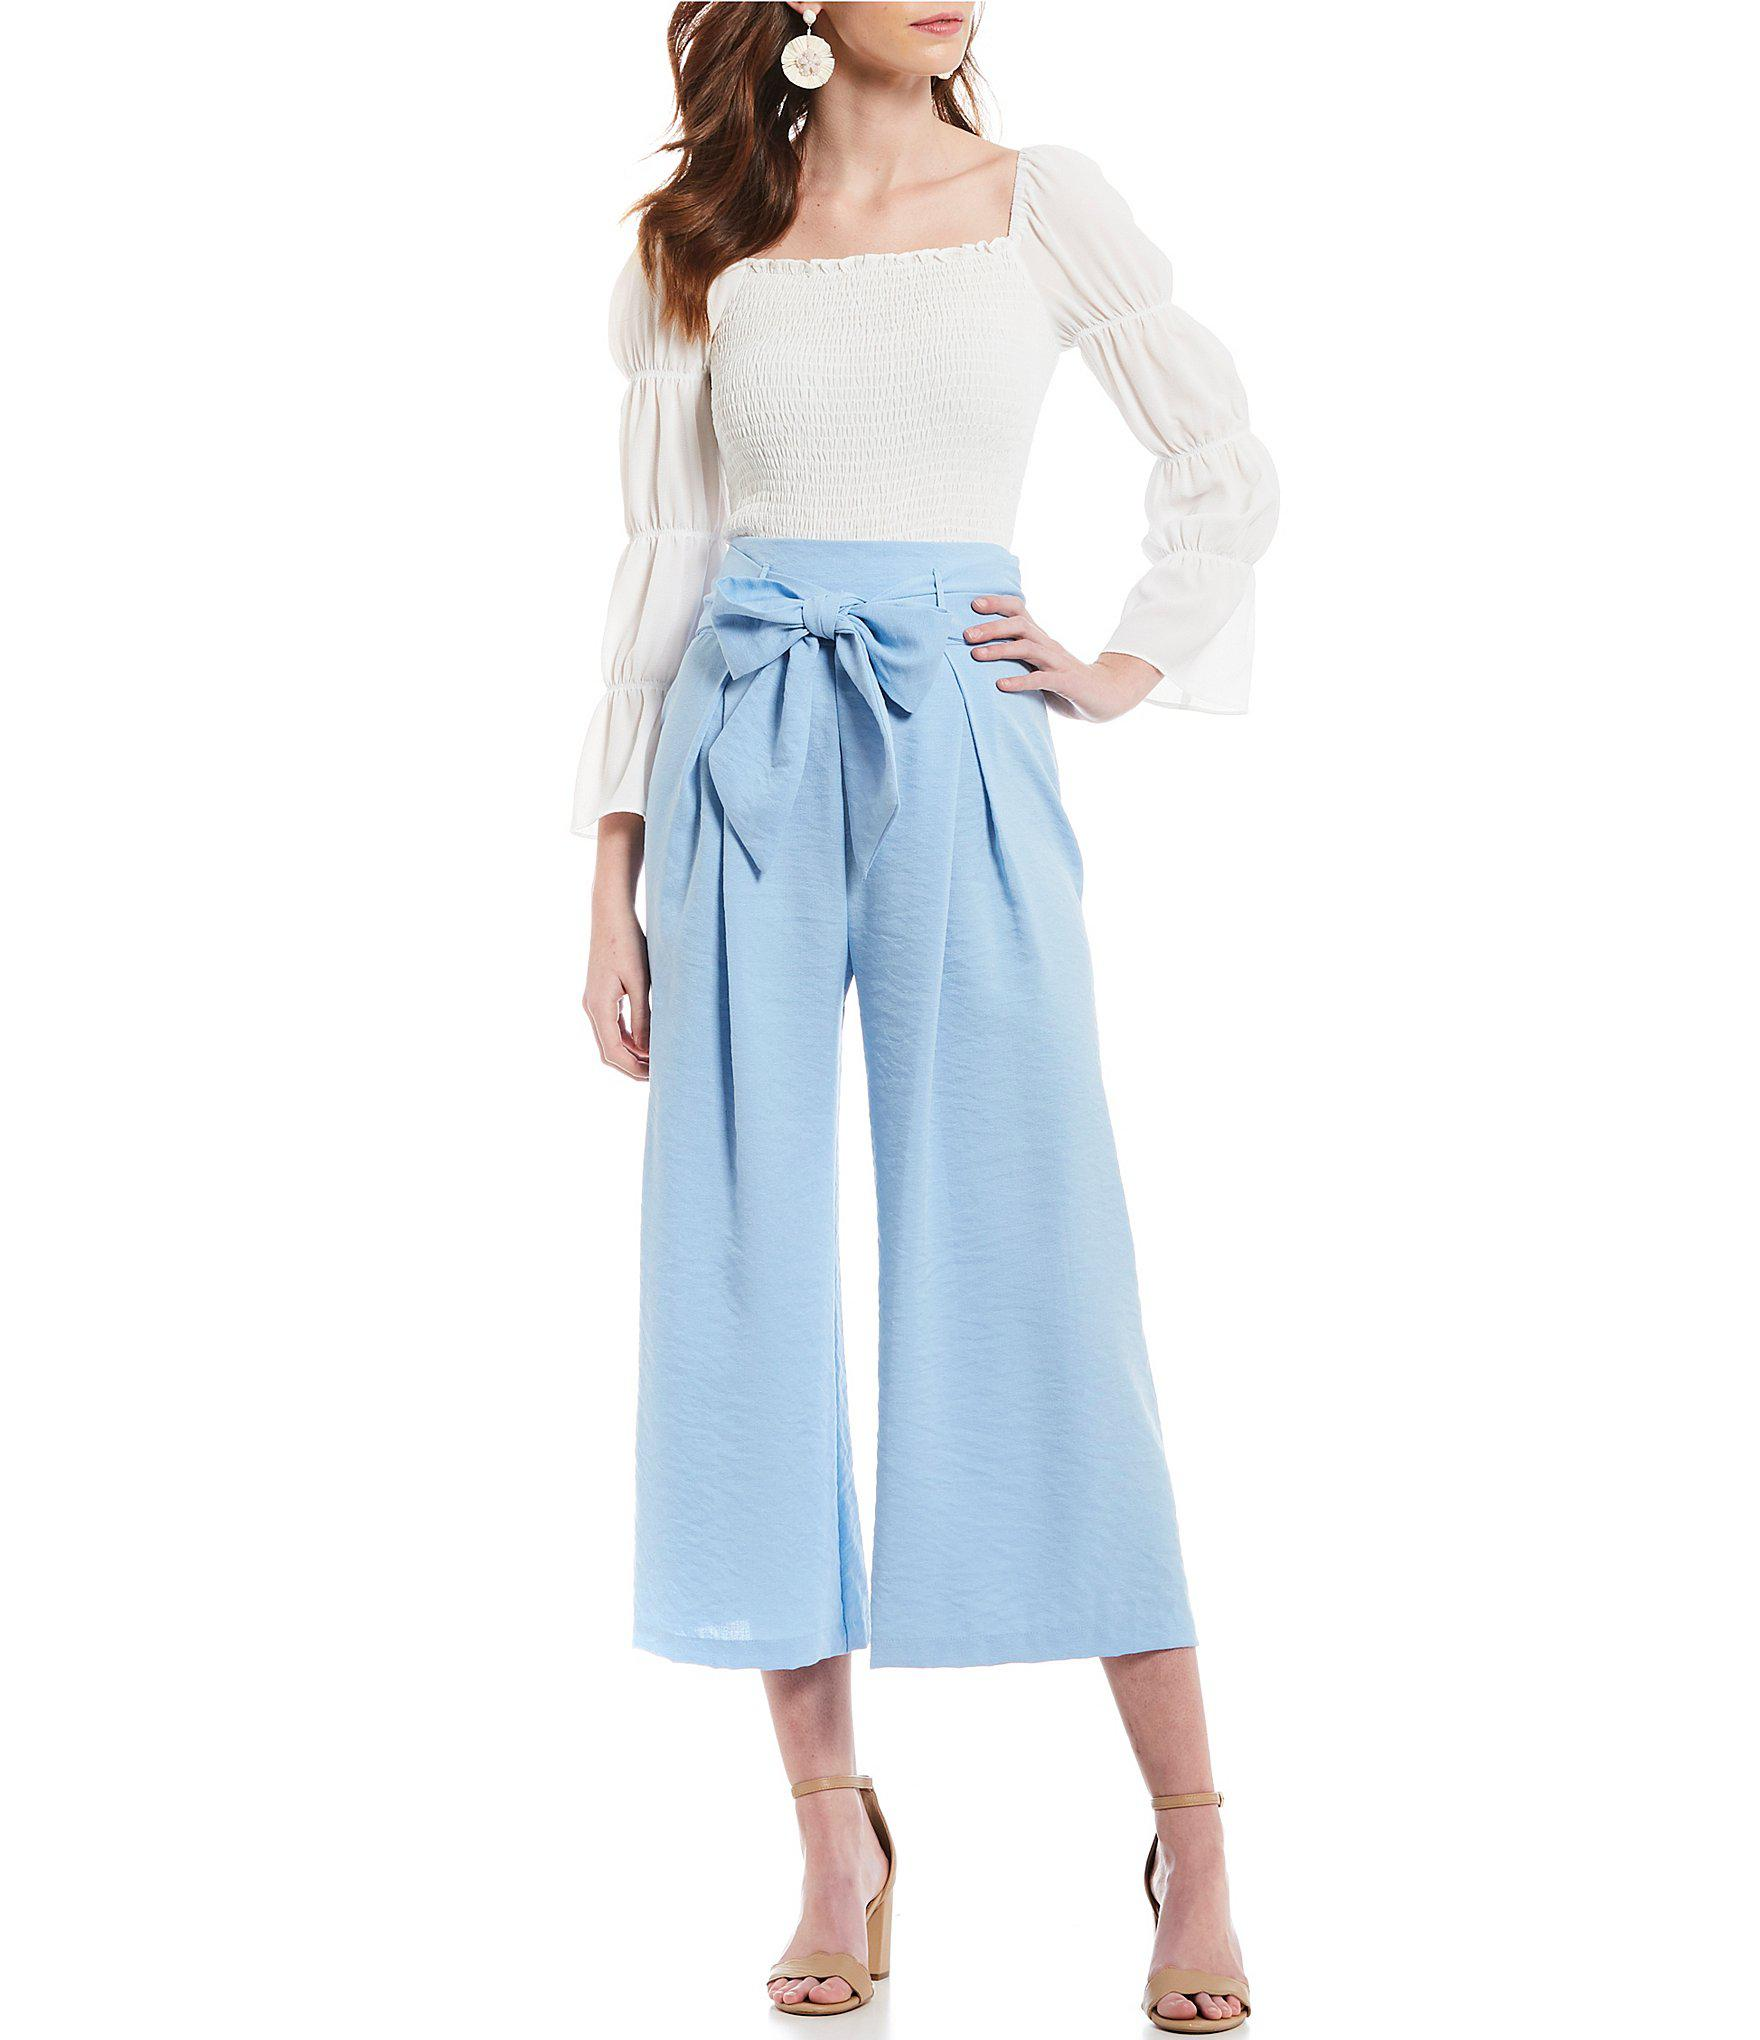 cf4a104f854338 Lyst - Sugarlips Paperbag High Rise Tie Waist Culotte Pant in Blue